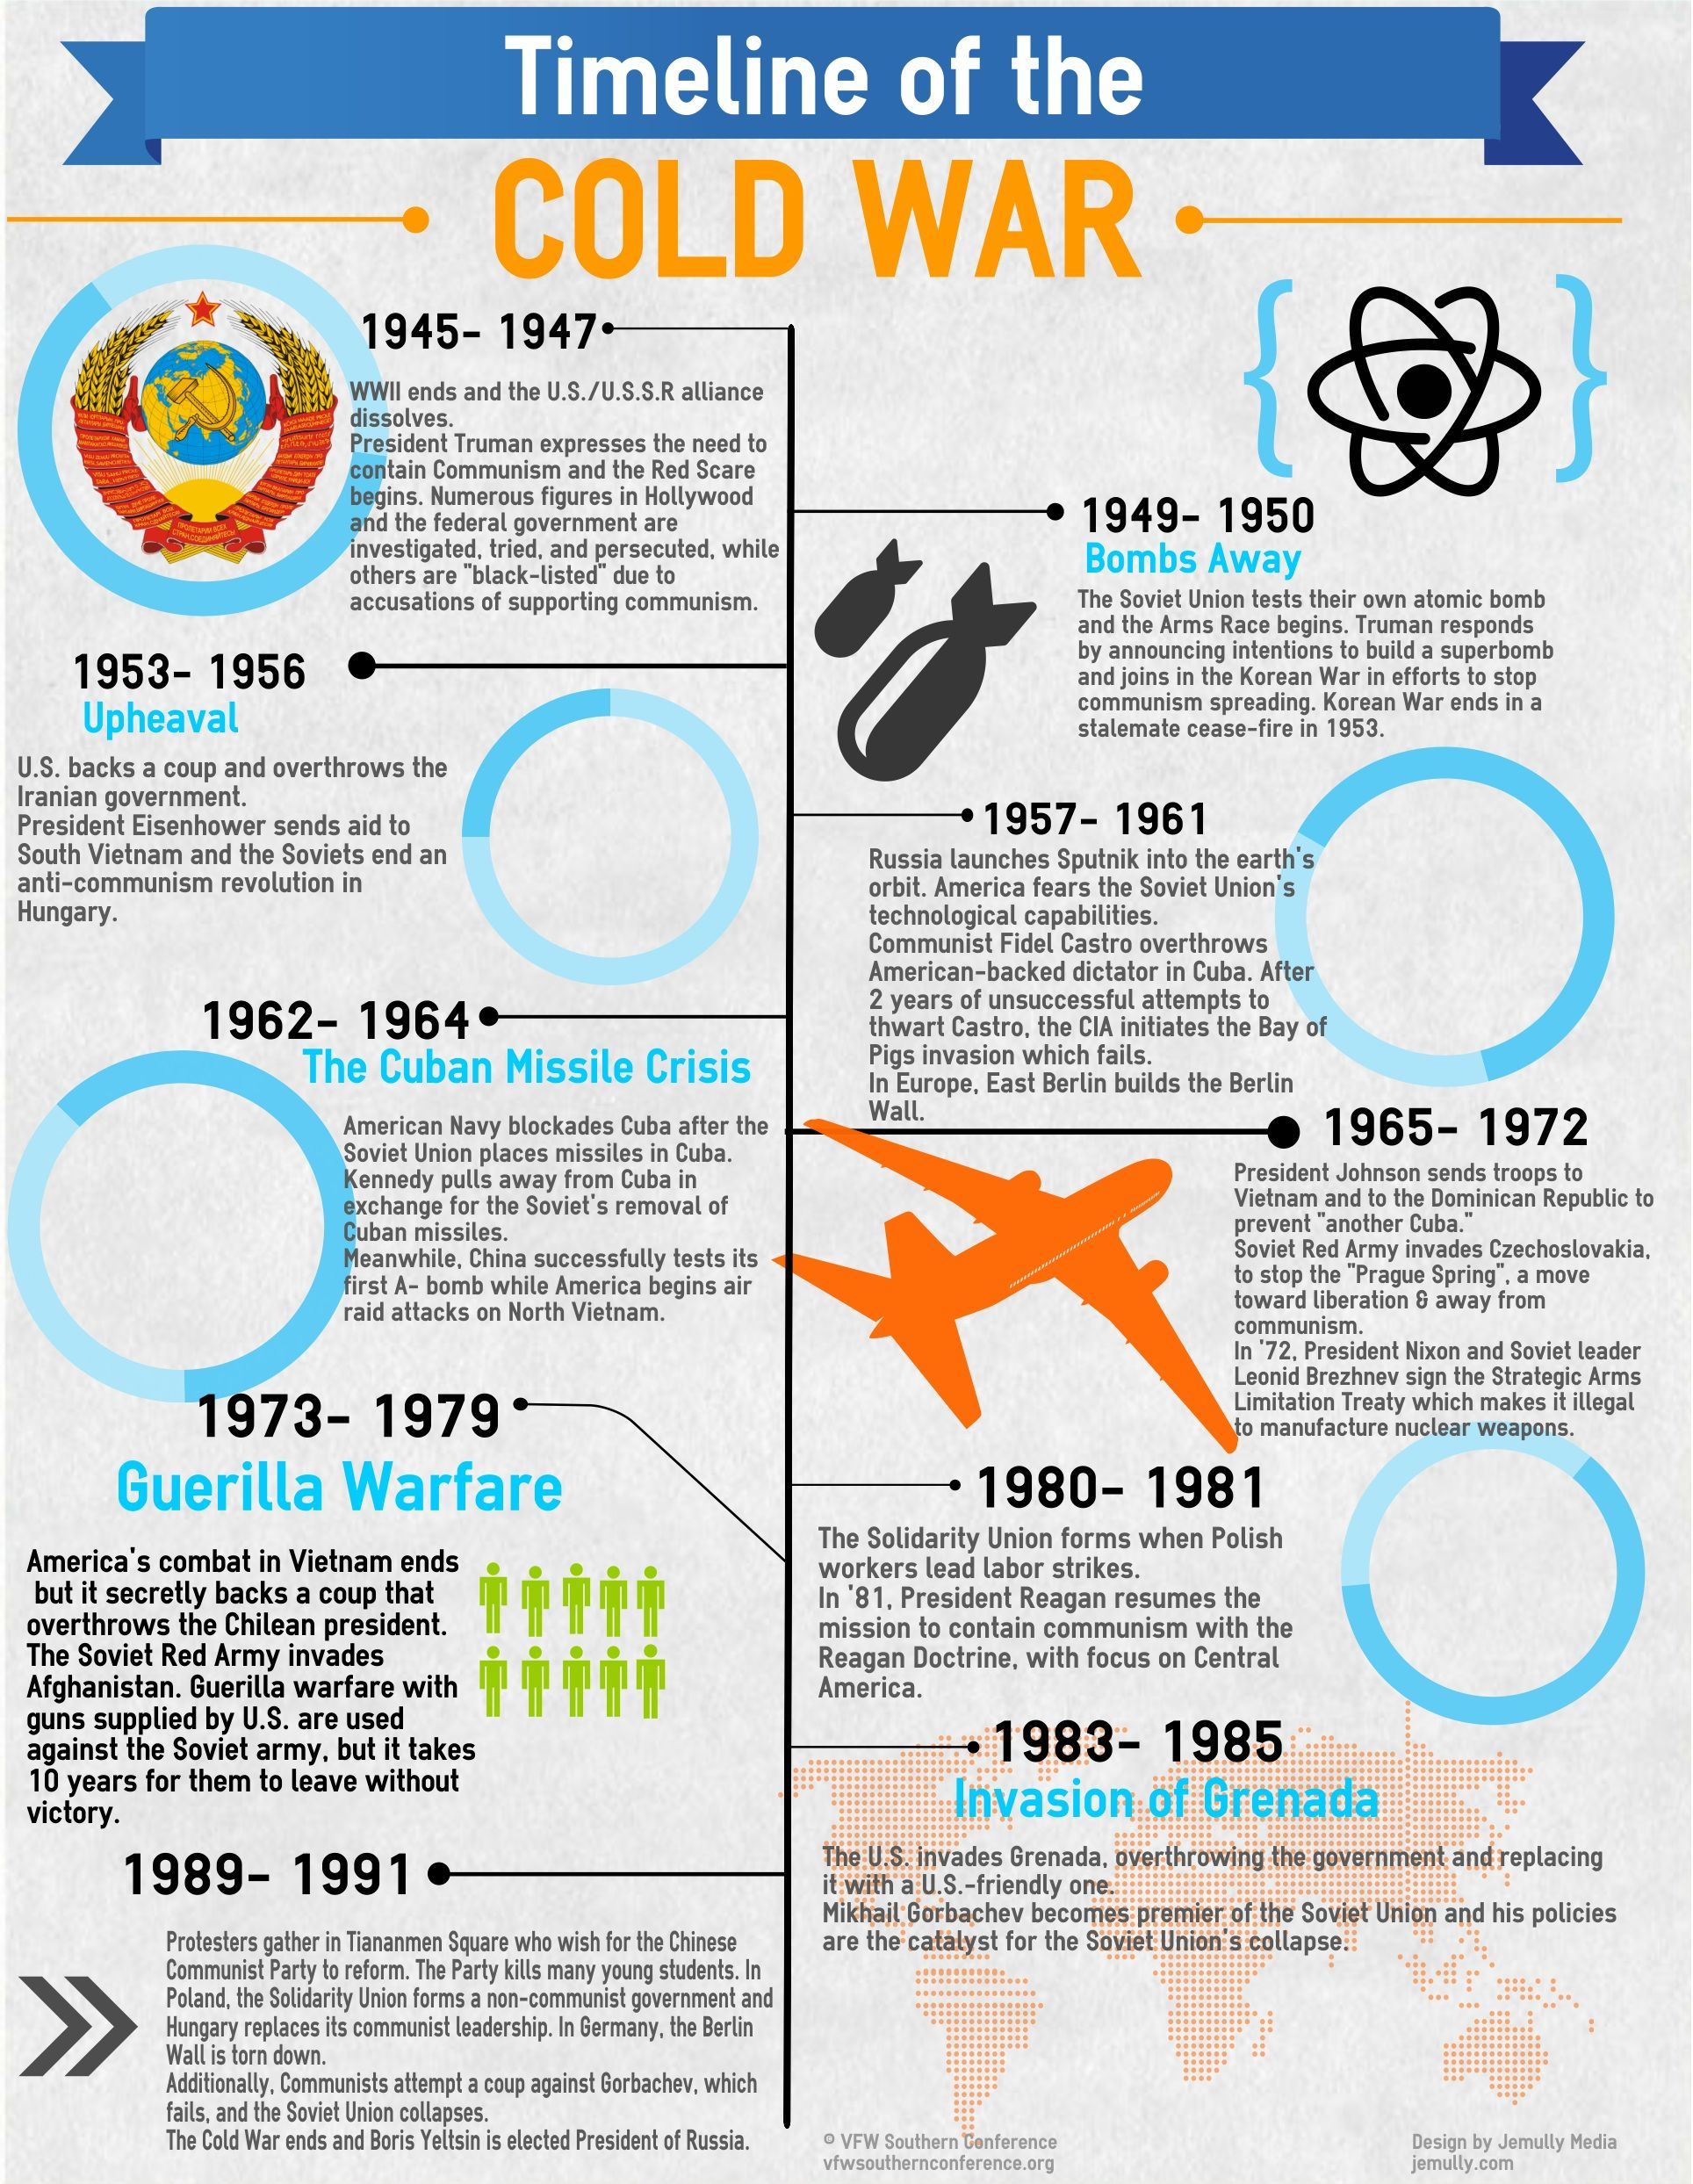 the evolution of nuclear energy after the cold war Learn the history of nuclear energy here, from roentgen's discovery of x-rays, through the manhattan project, up to fukushima.